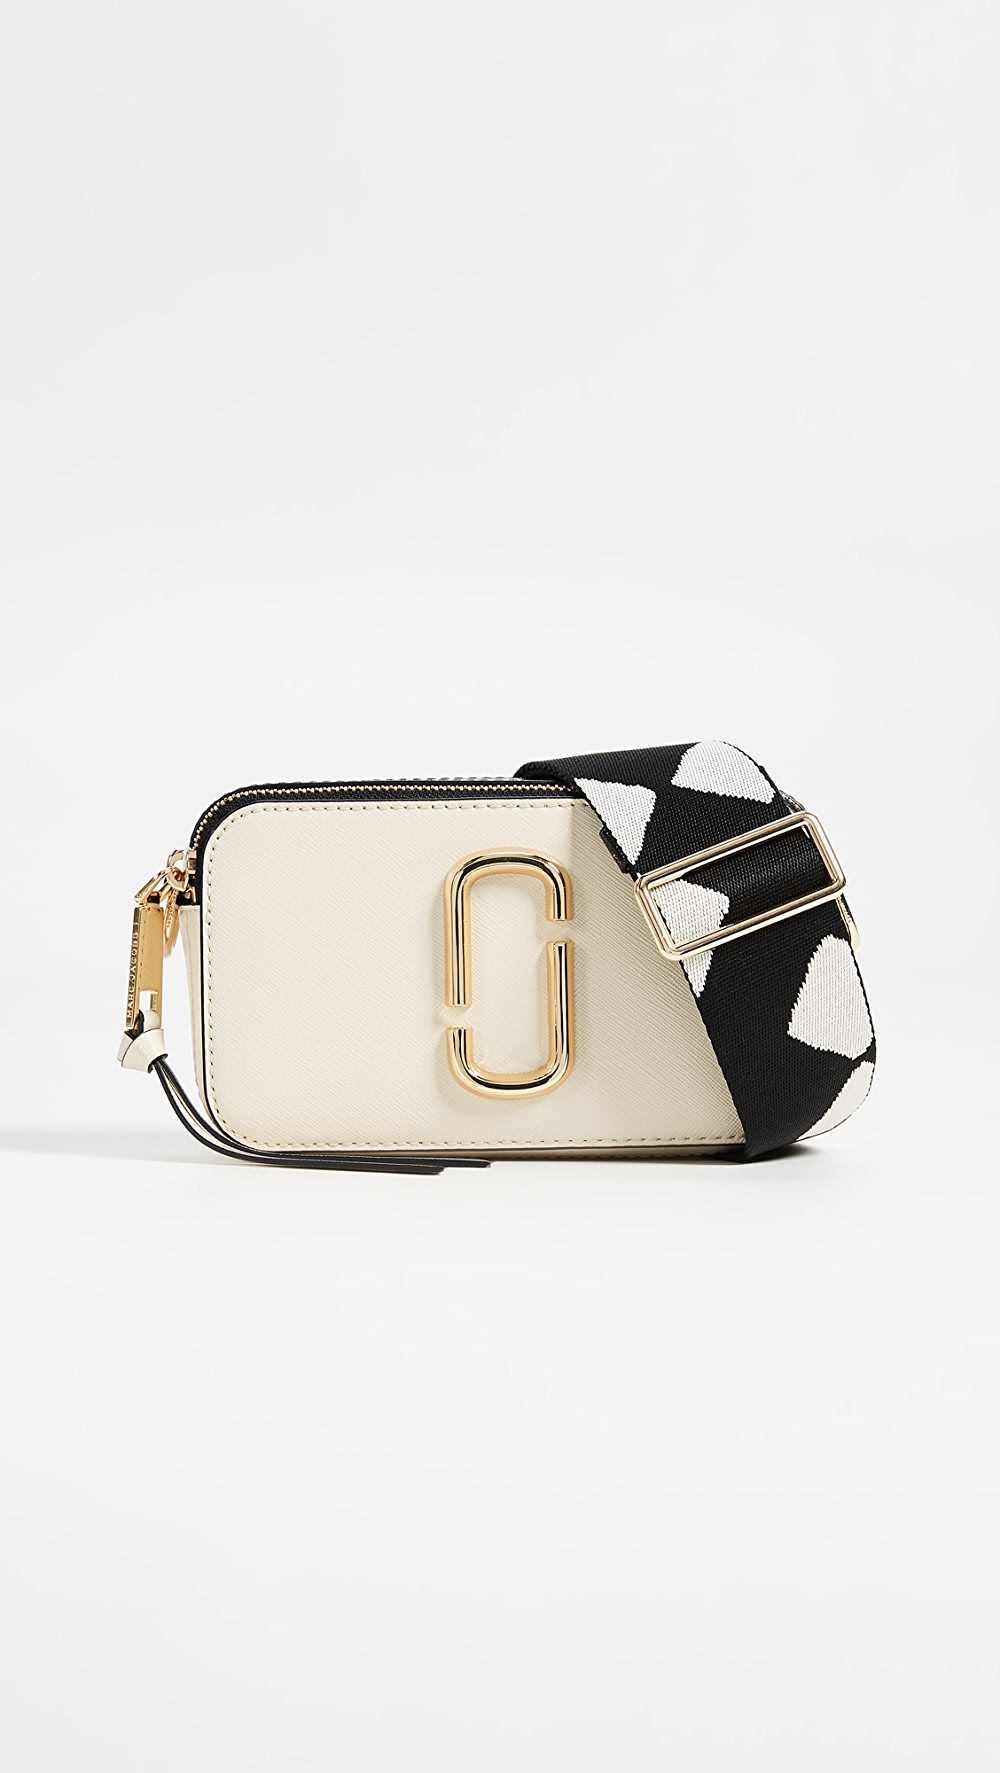 Honey The Marc Jacobs - Snapshot Camera Bag Goods Of Every Description Are Available